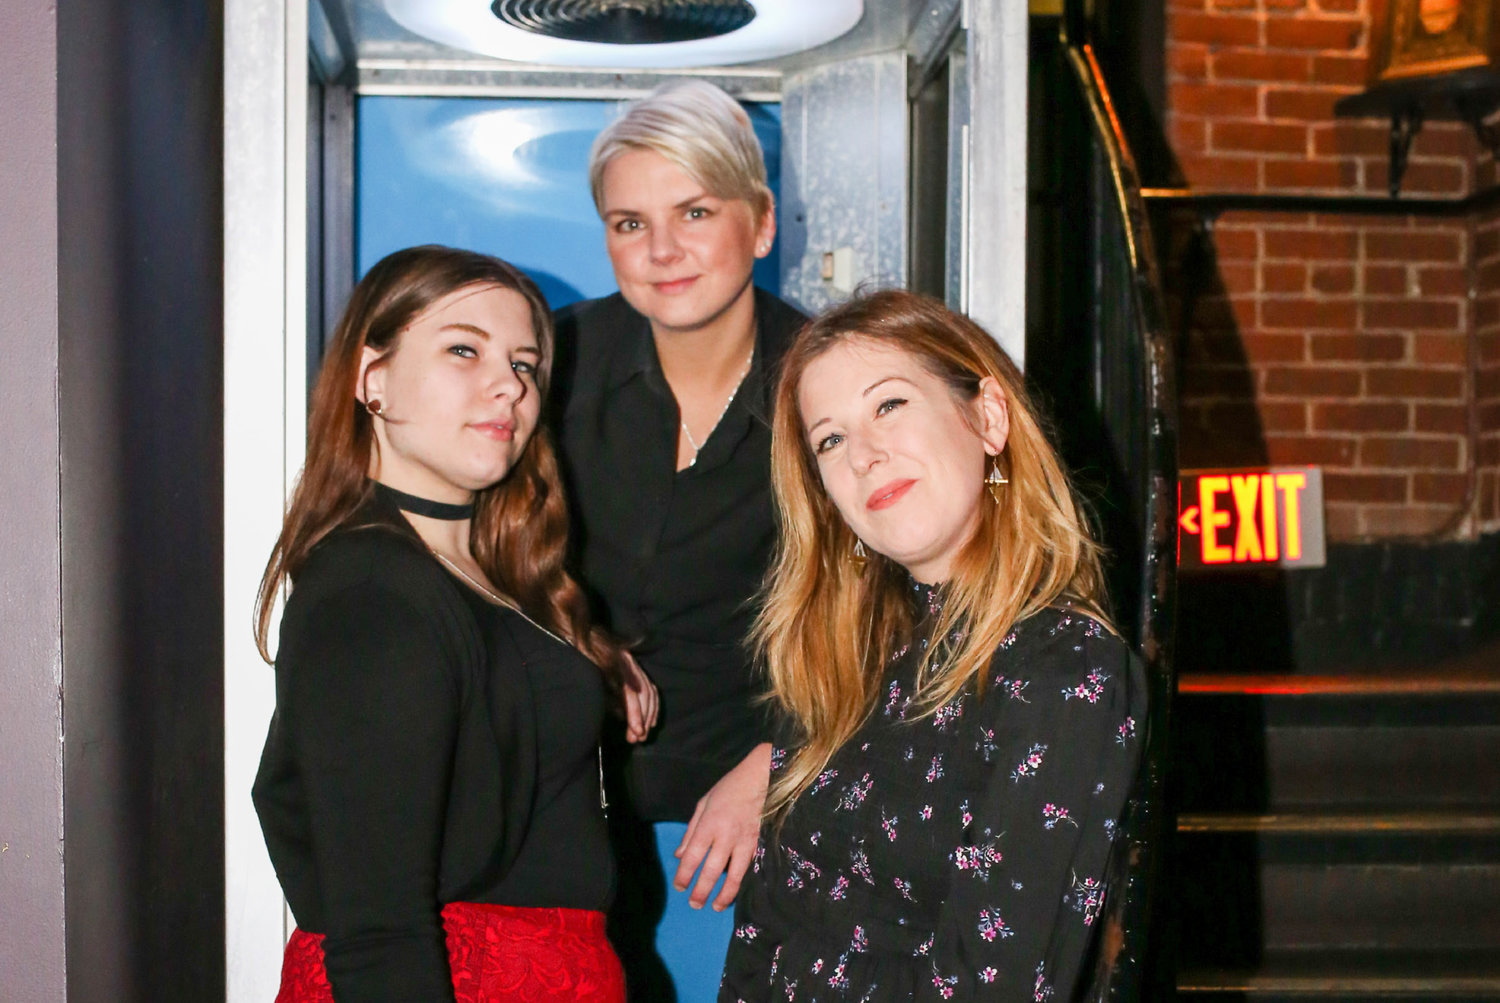 Left to right: Cherry Pit members Amelia Rose, Julie Bozek, and Chelsea Paulhus